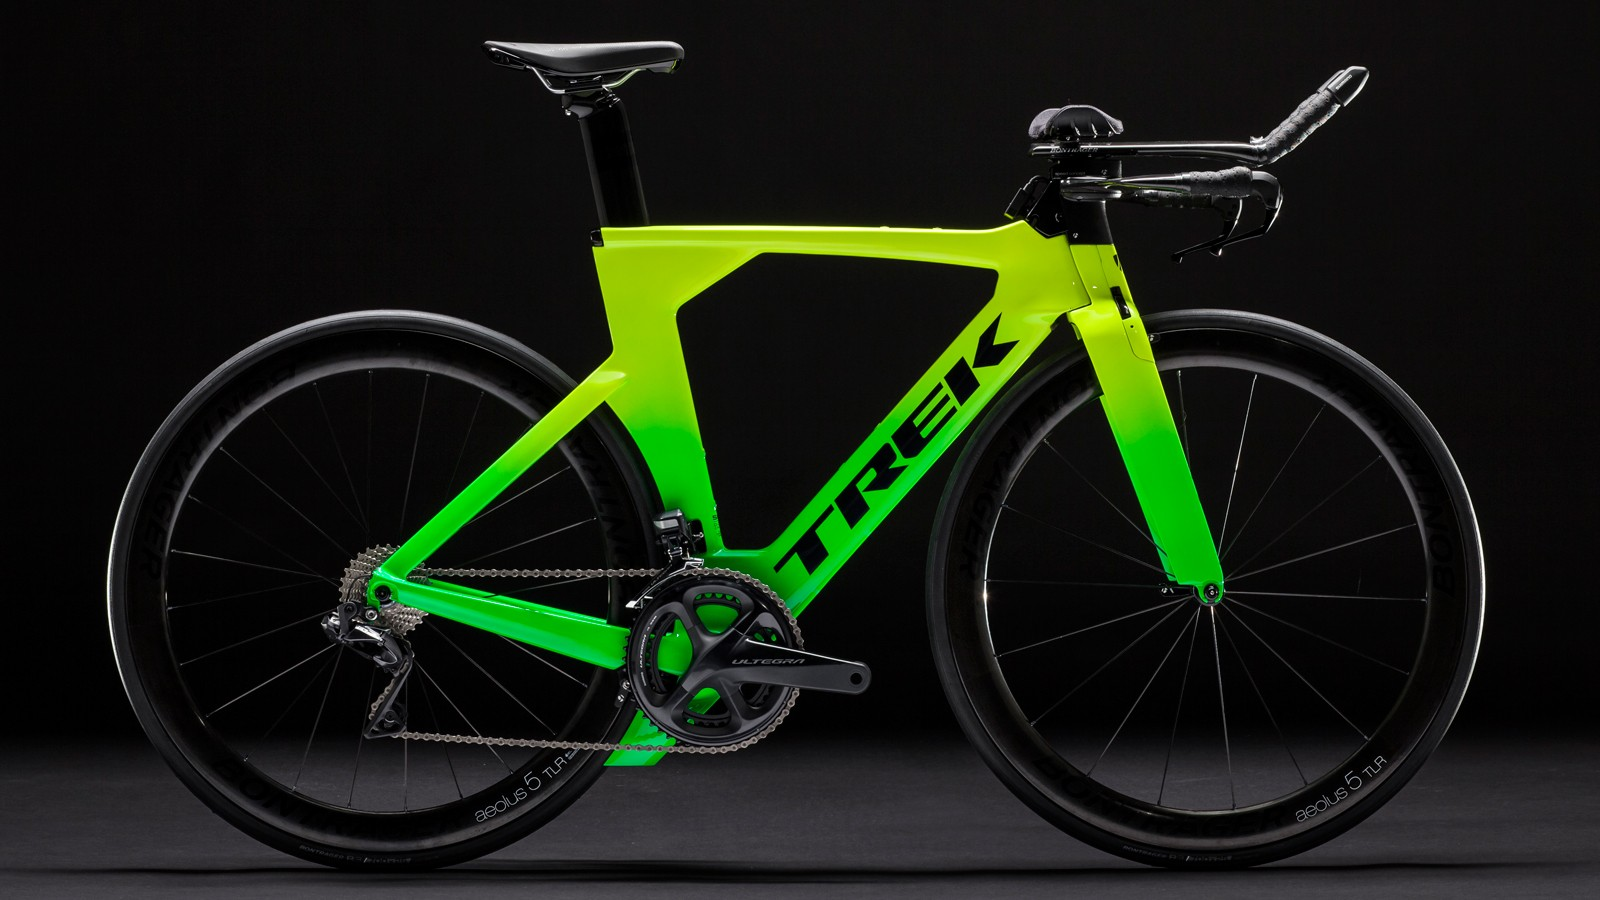 Finding your triathlon bike in a sea of aero bars will be easier with a bright paint job